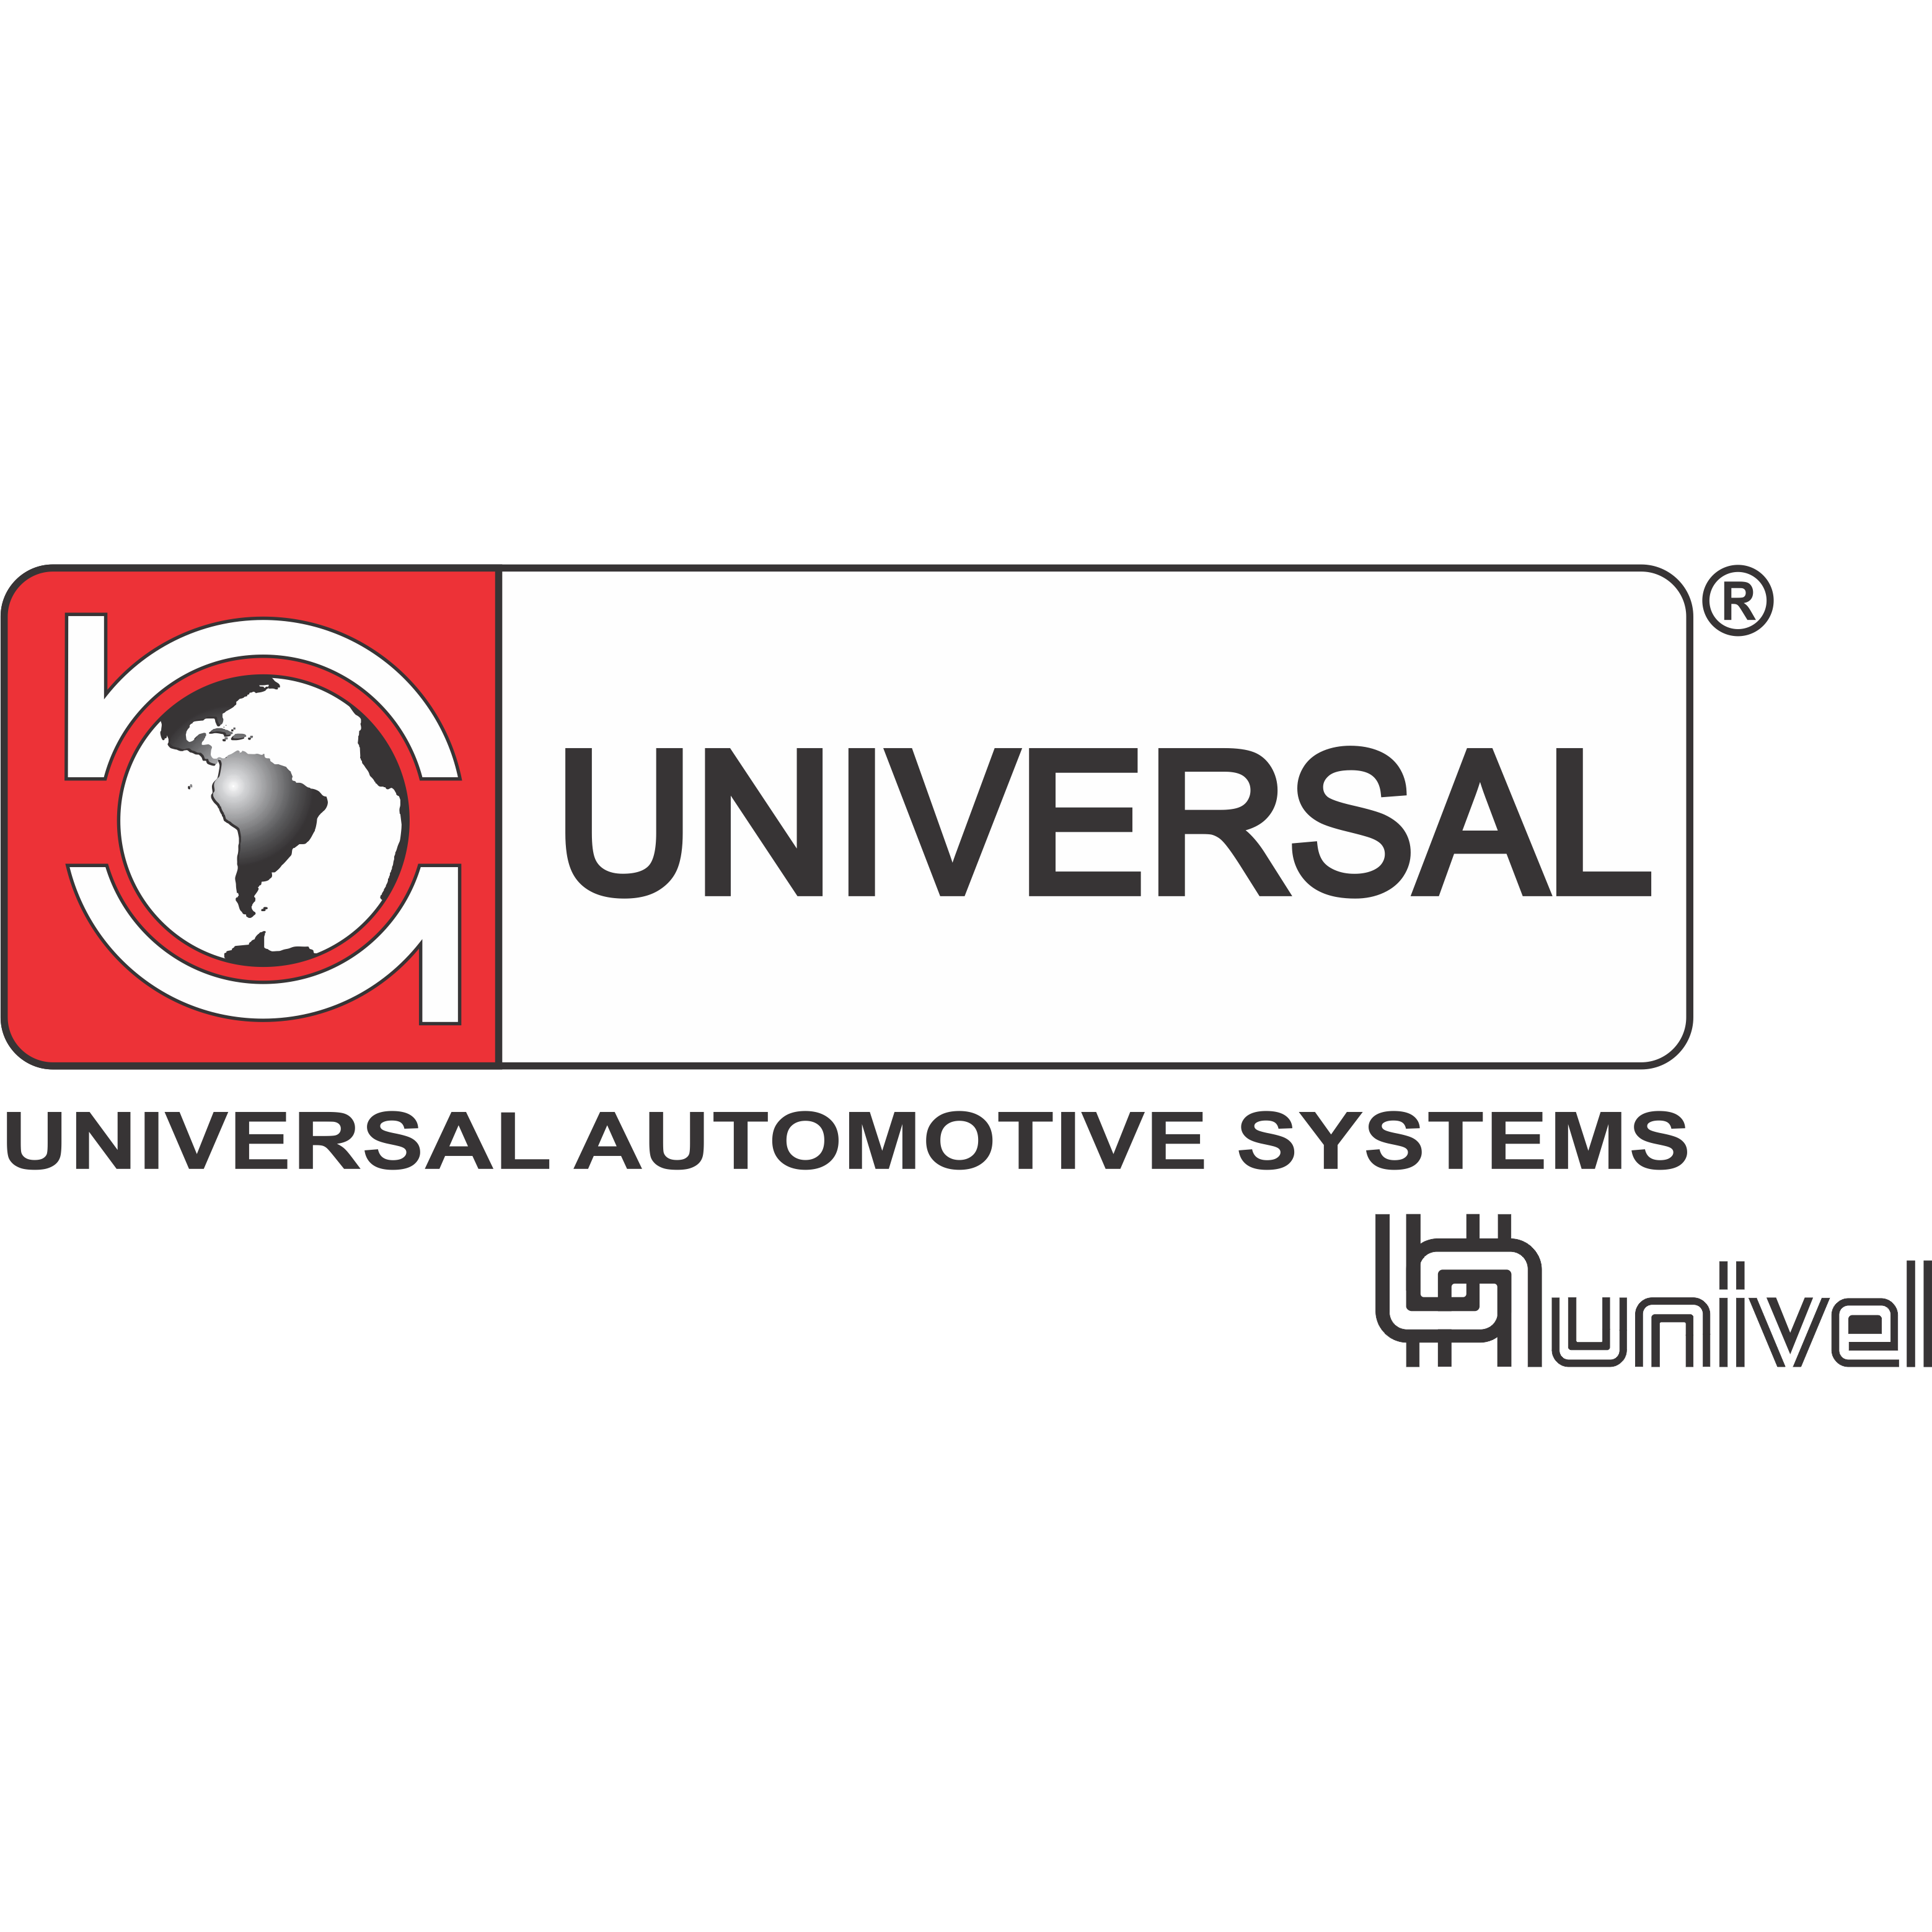 Universal Automotive Systems